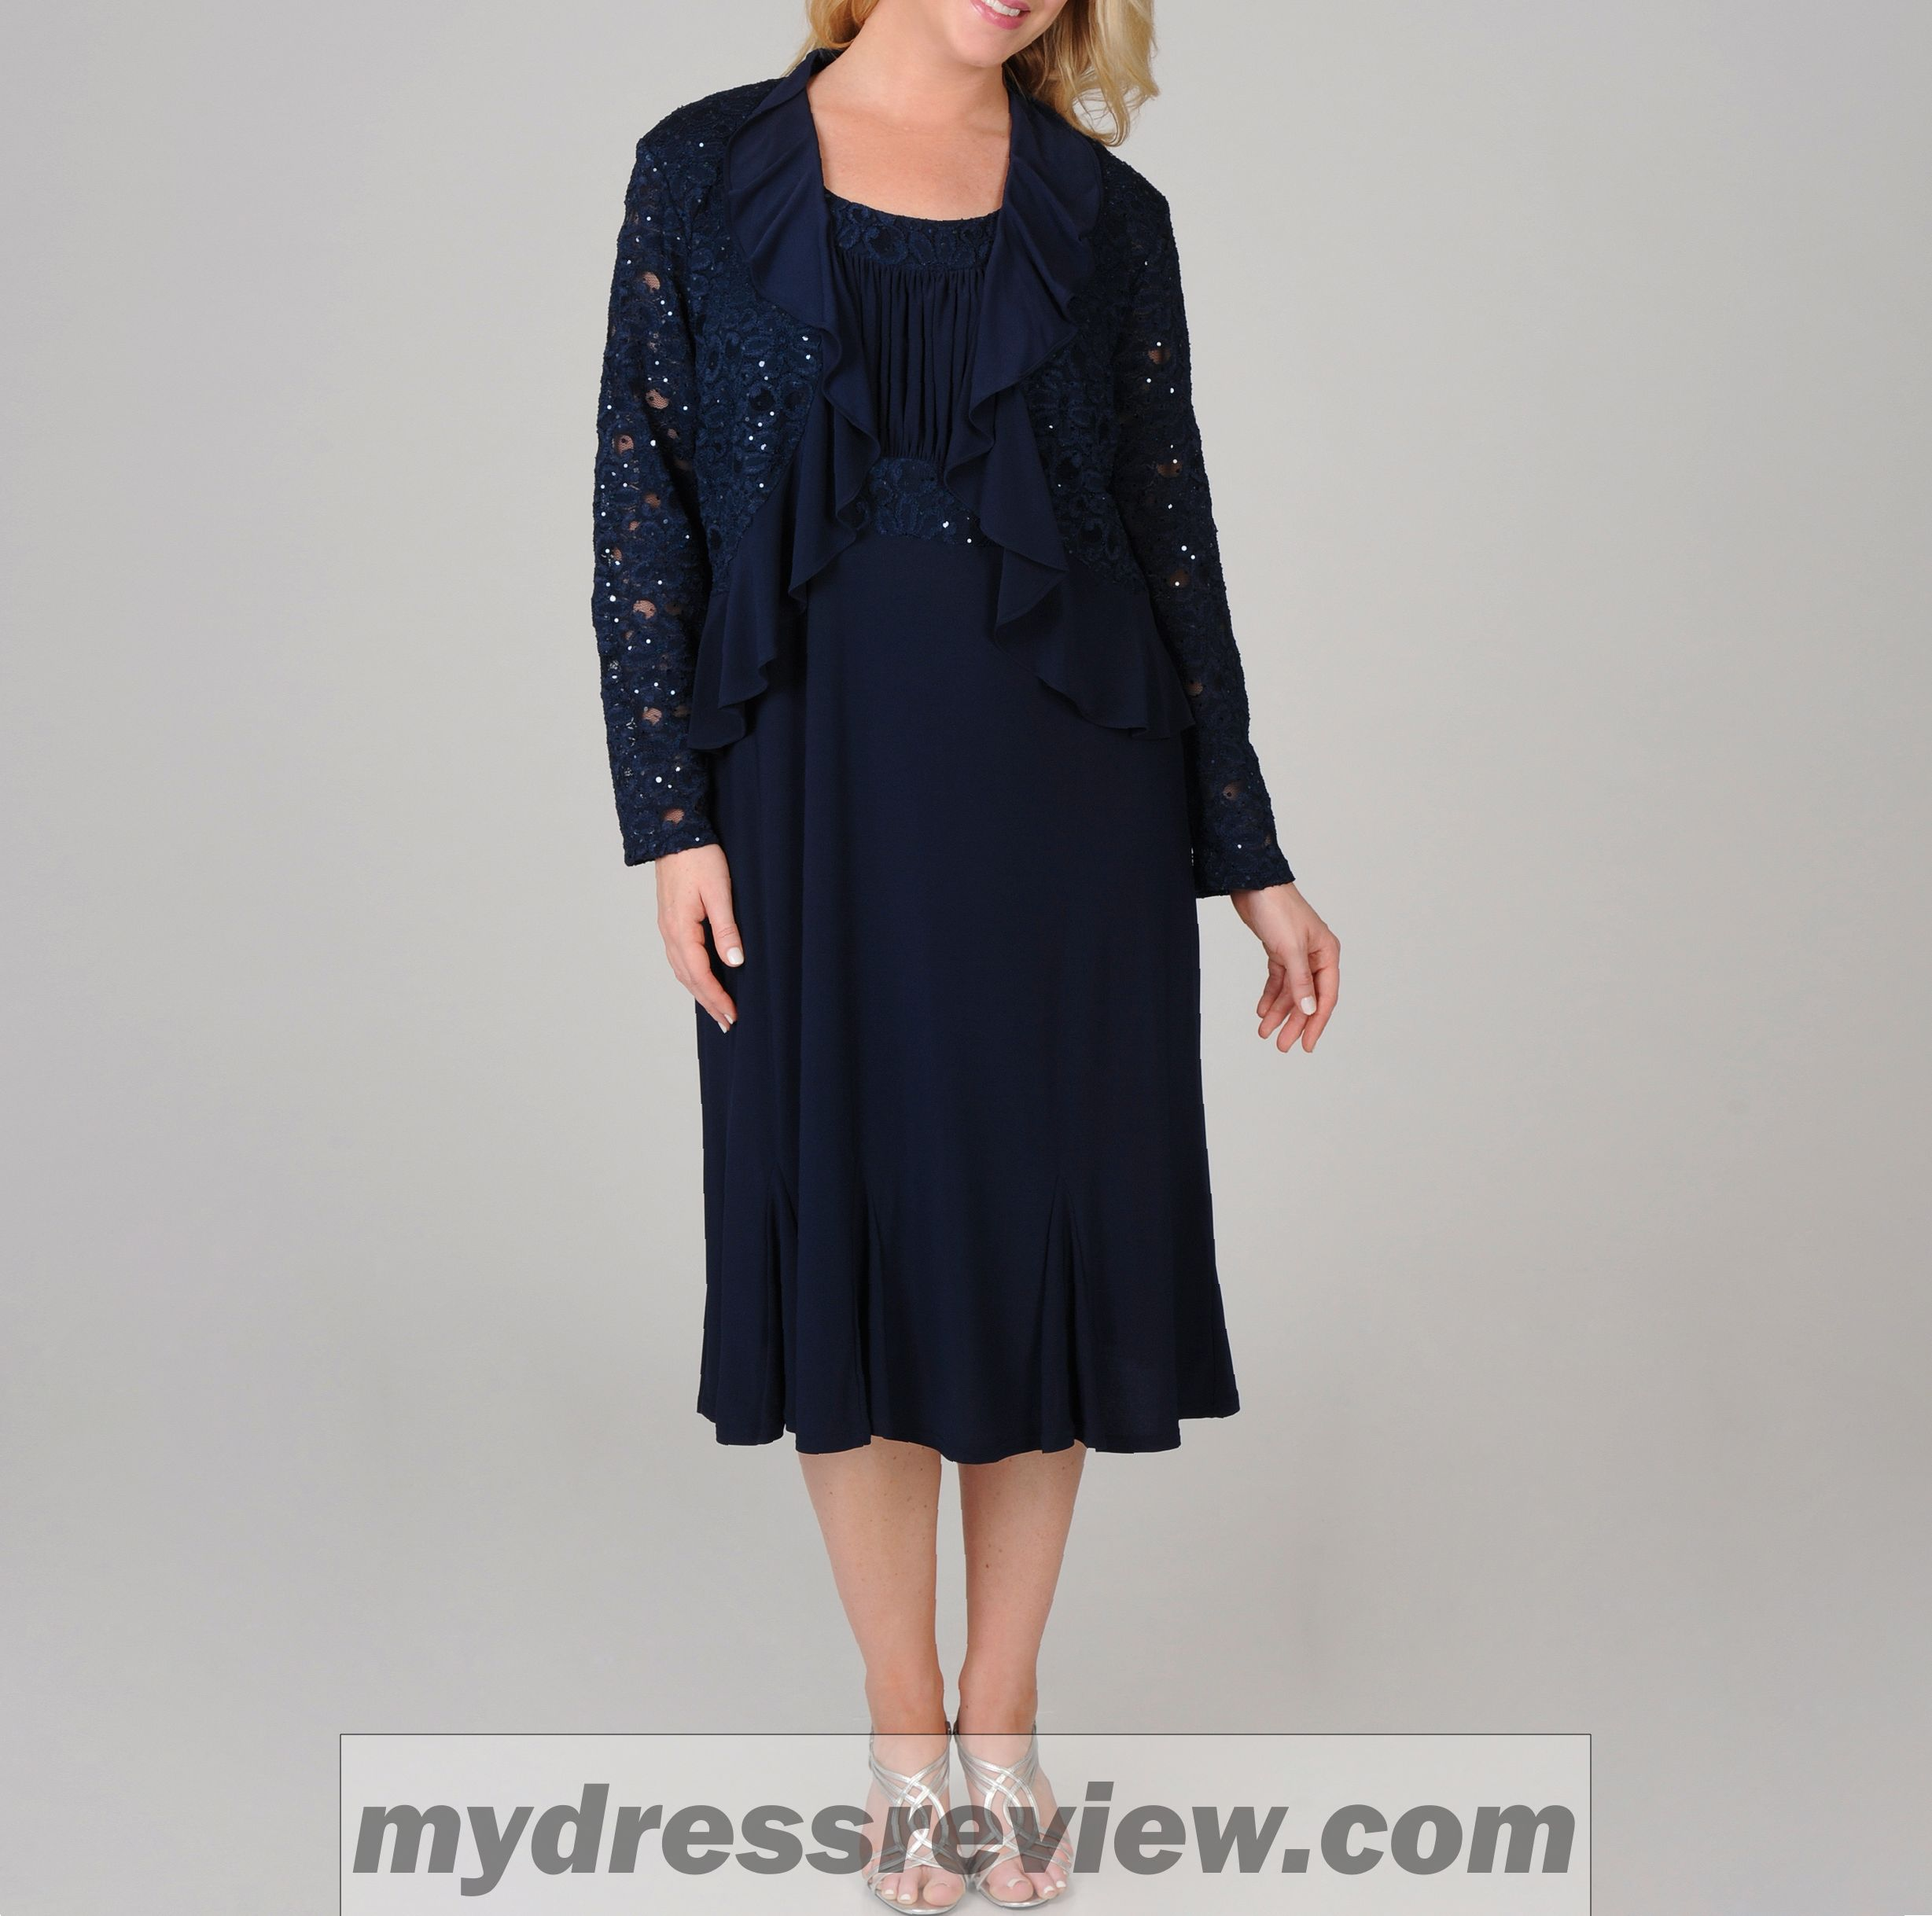 Formal Dress Jackets Plus Size & Review Clothing Brand